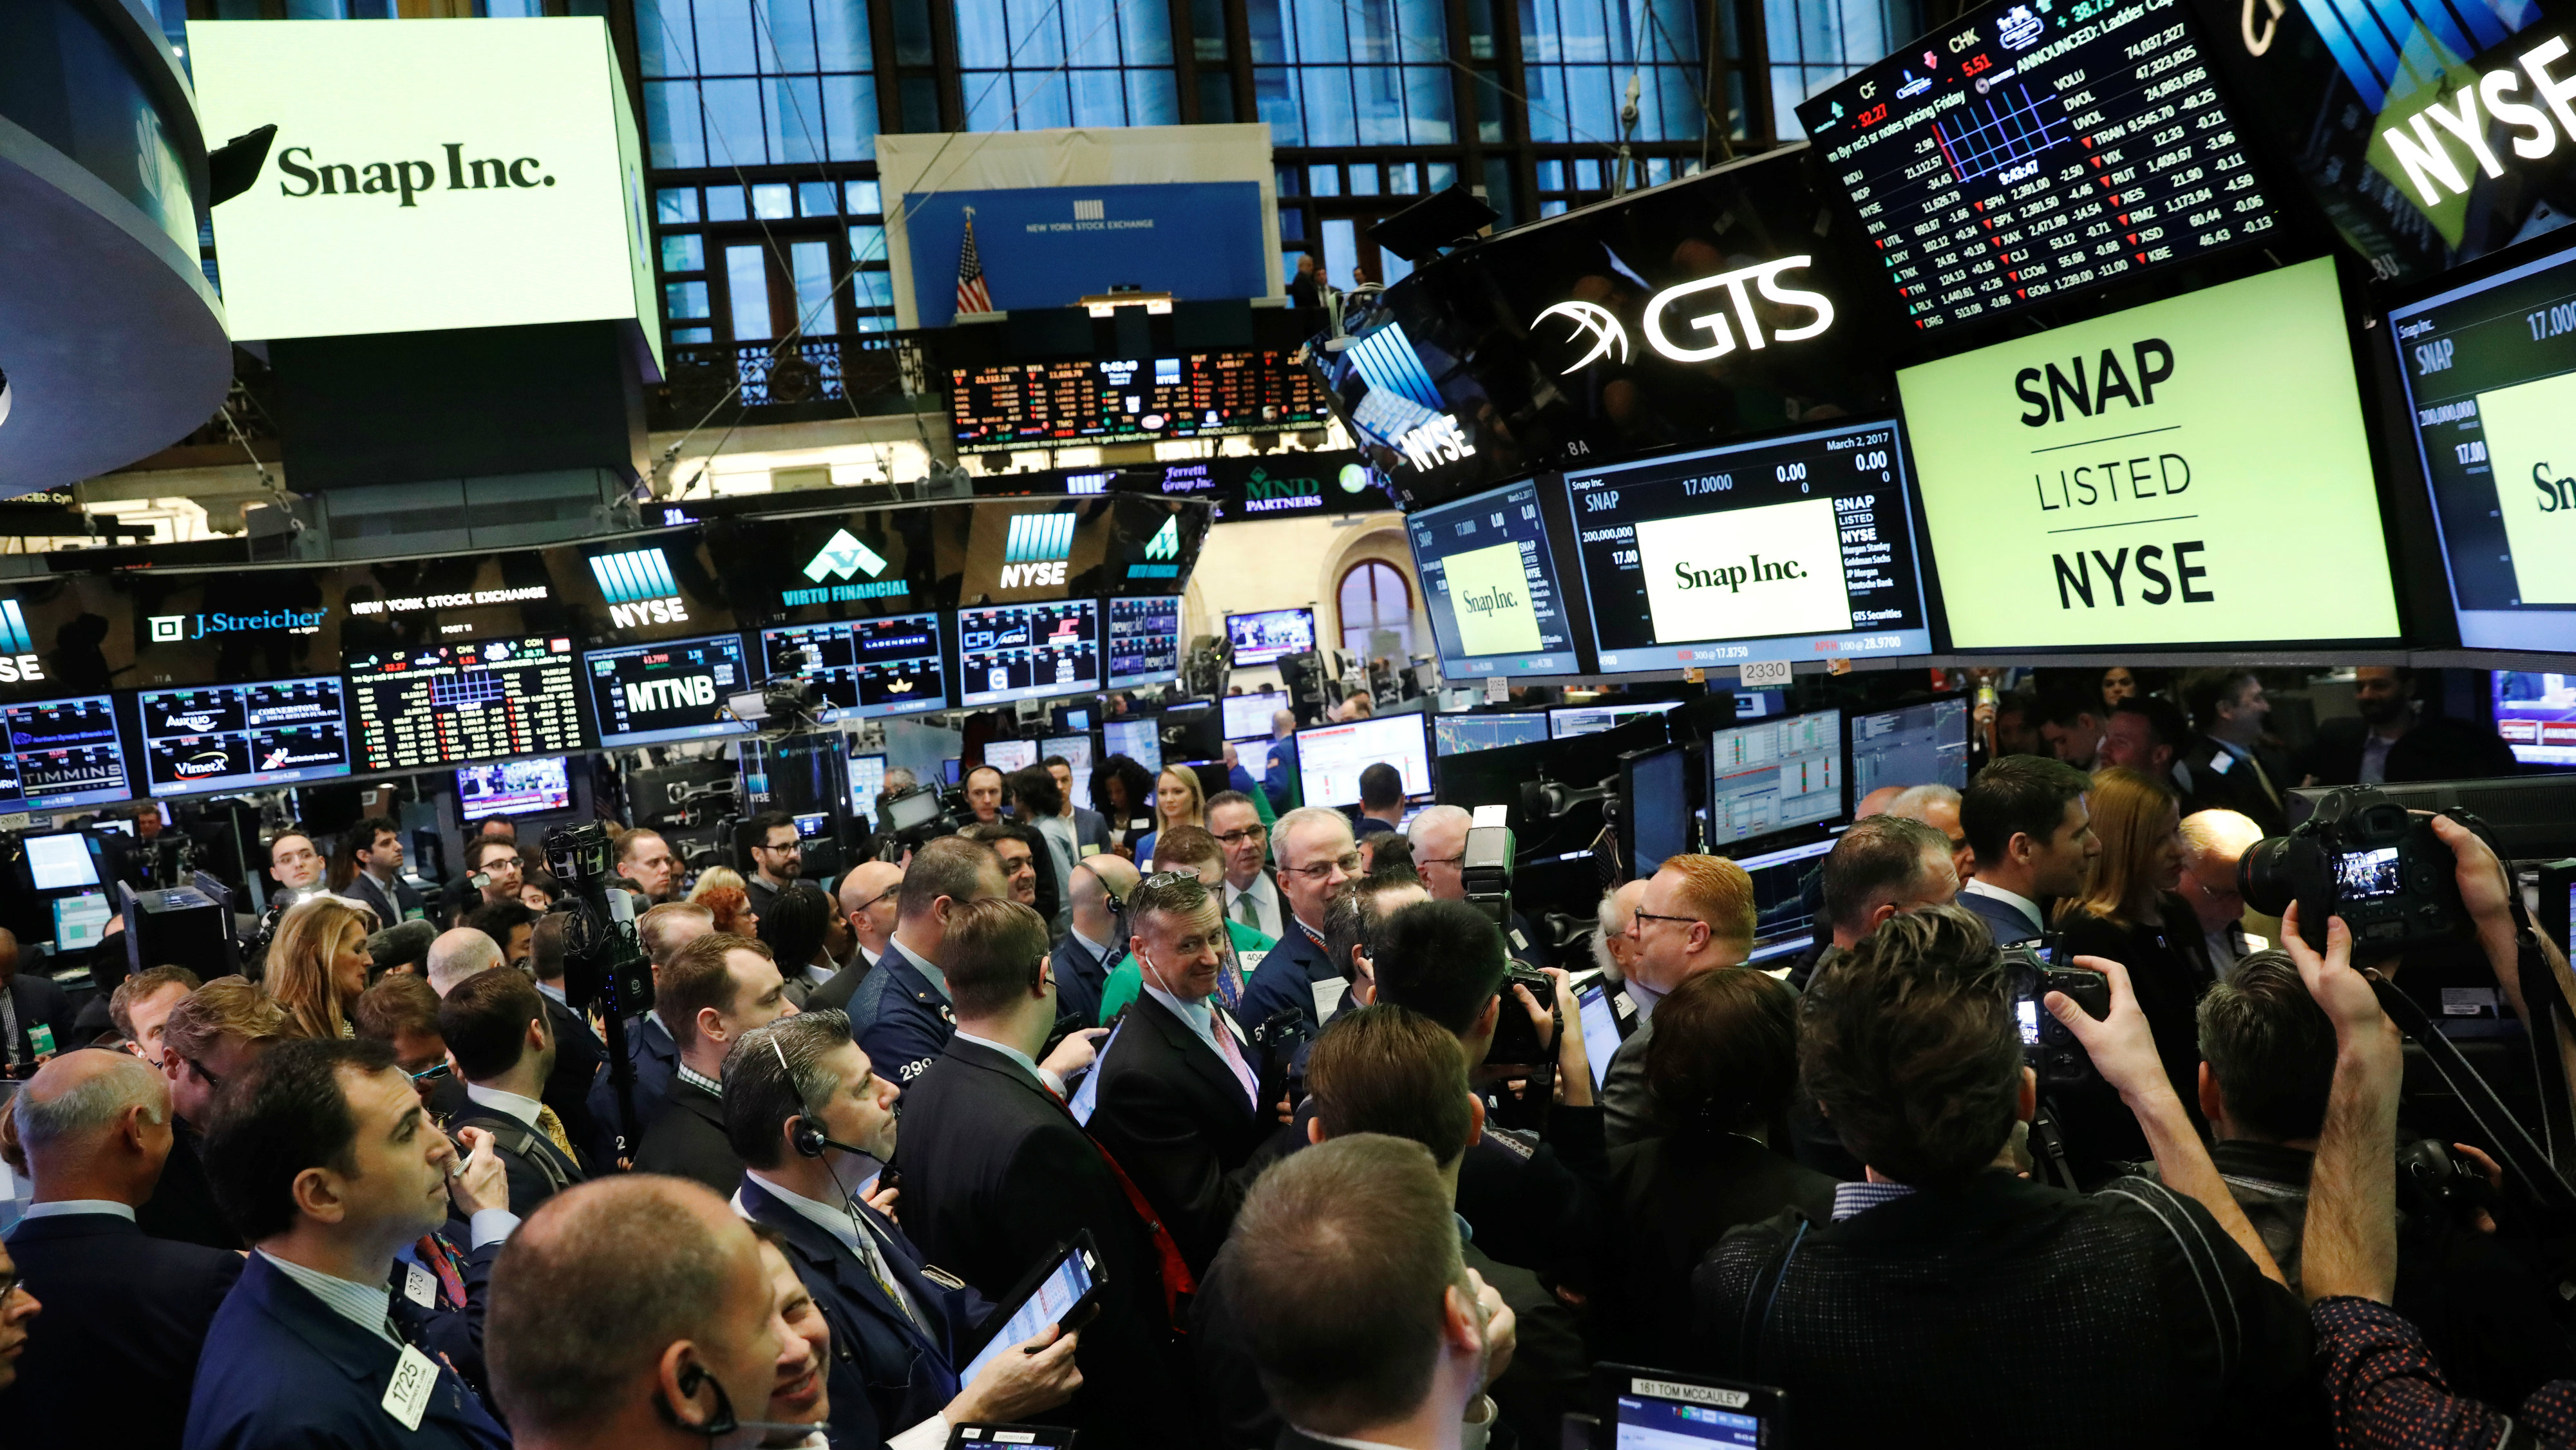 Traders on the floor of the New York Stock Exchange (NYSE) wait for Snap Inc to post their IPO